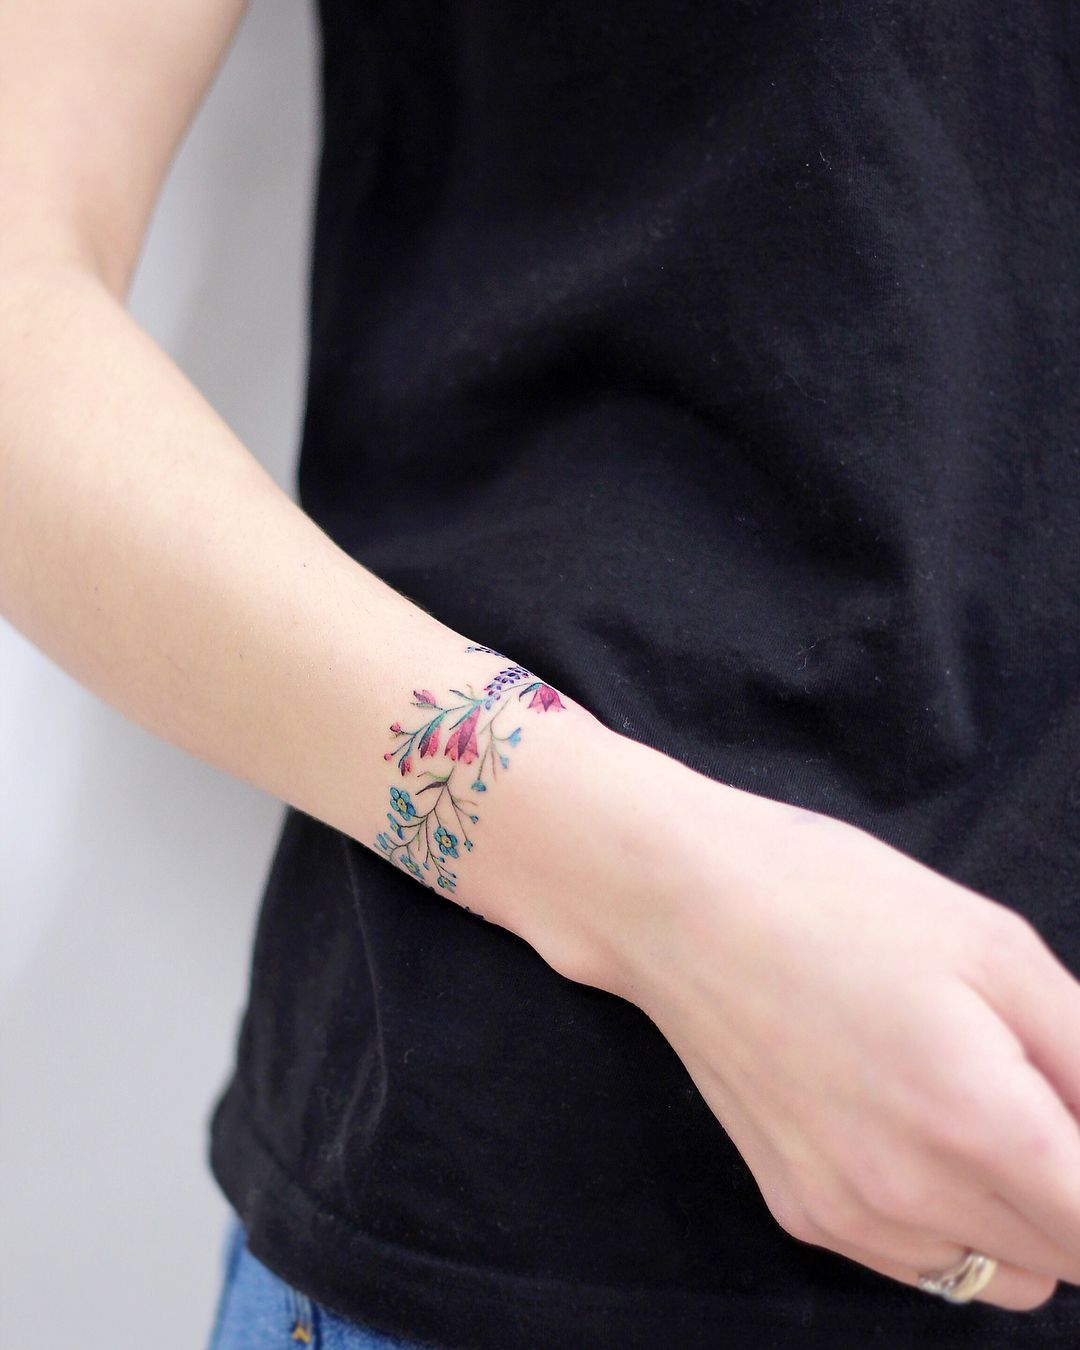 Check out latest bracelet tattoo style on wrists for charm